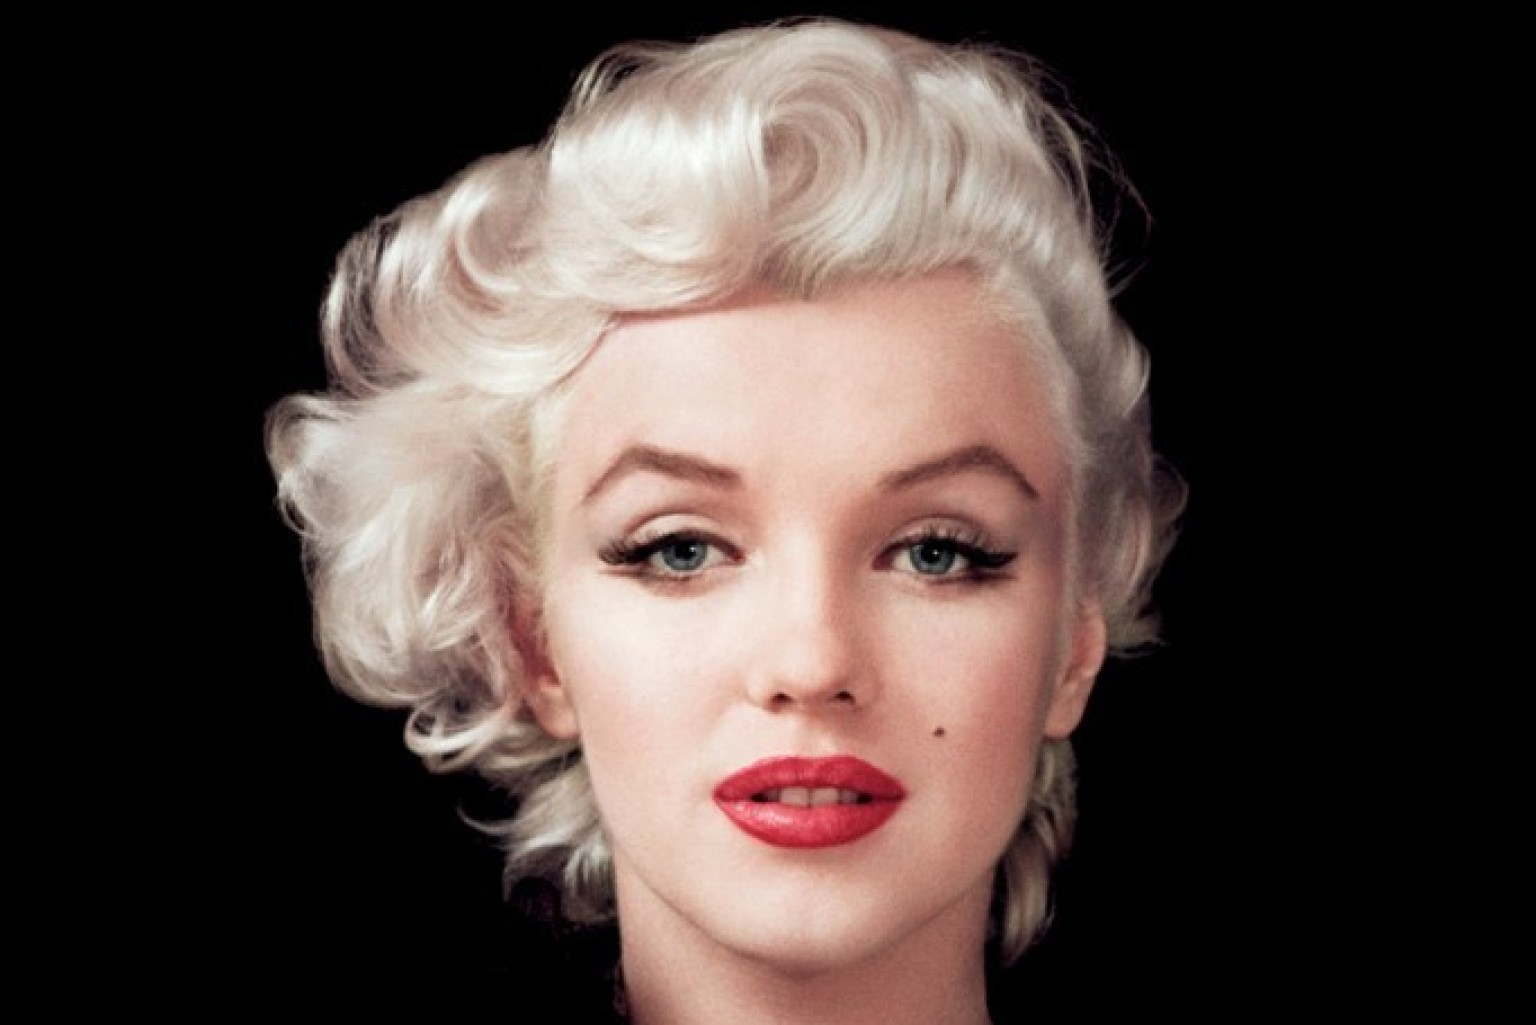 Citaten Van Marilyn Monroe : Top marilyn monroe quotes on fashion and style ldnfashion